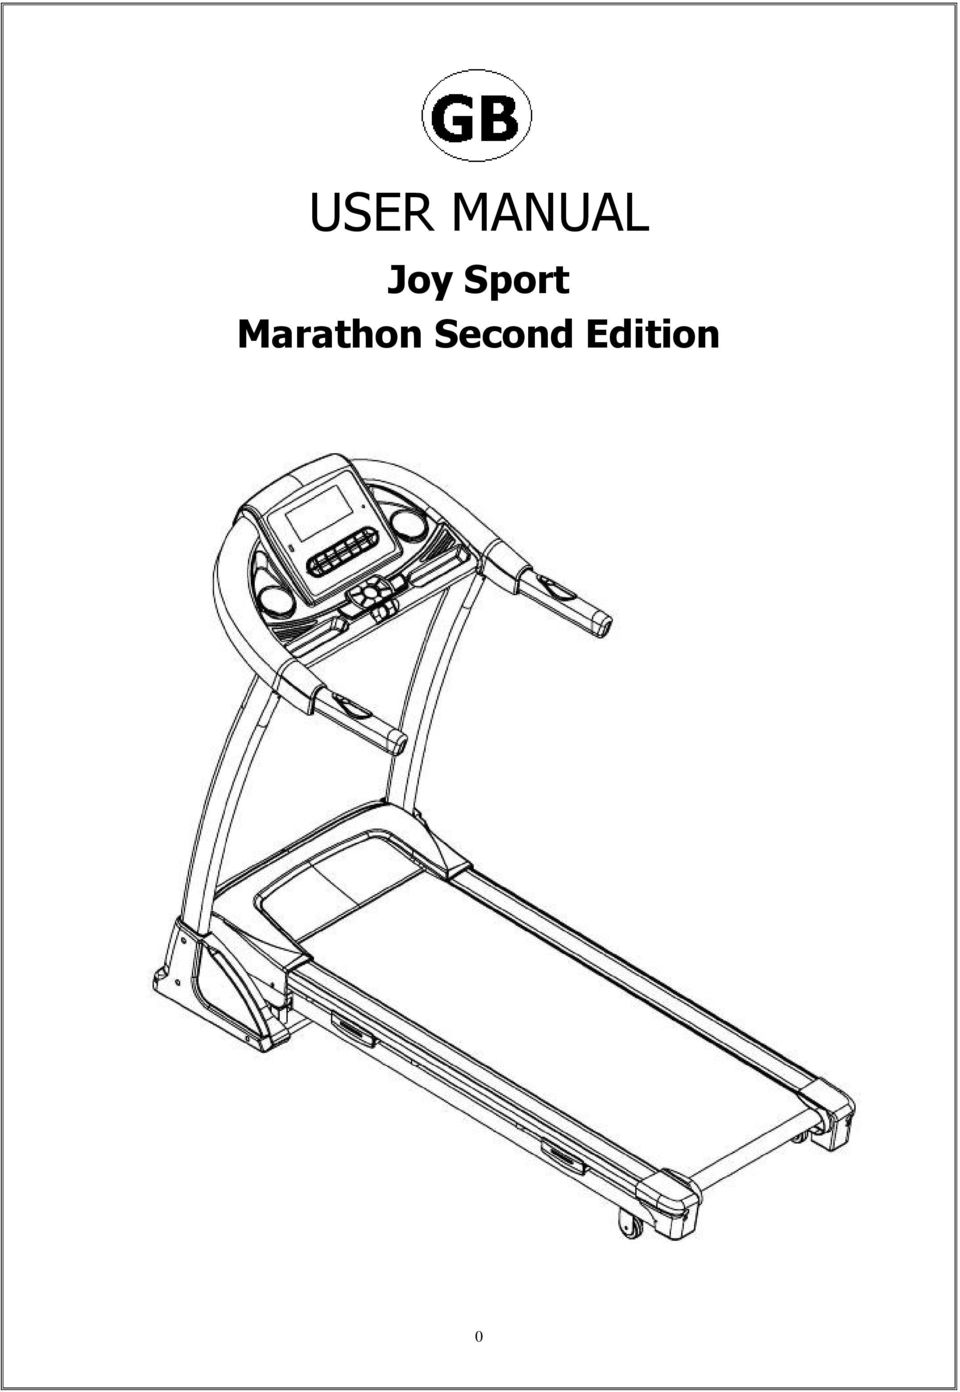 Handleiding joy sport marathon second edition pdf before installation and operation please read this operation manual carefully 2 please save this manual for future reference 3 fandeluxe Images